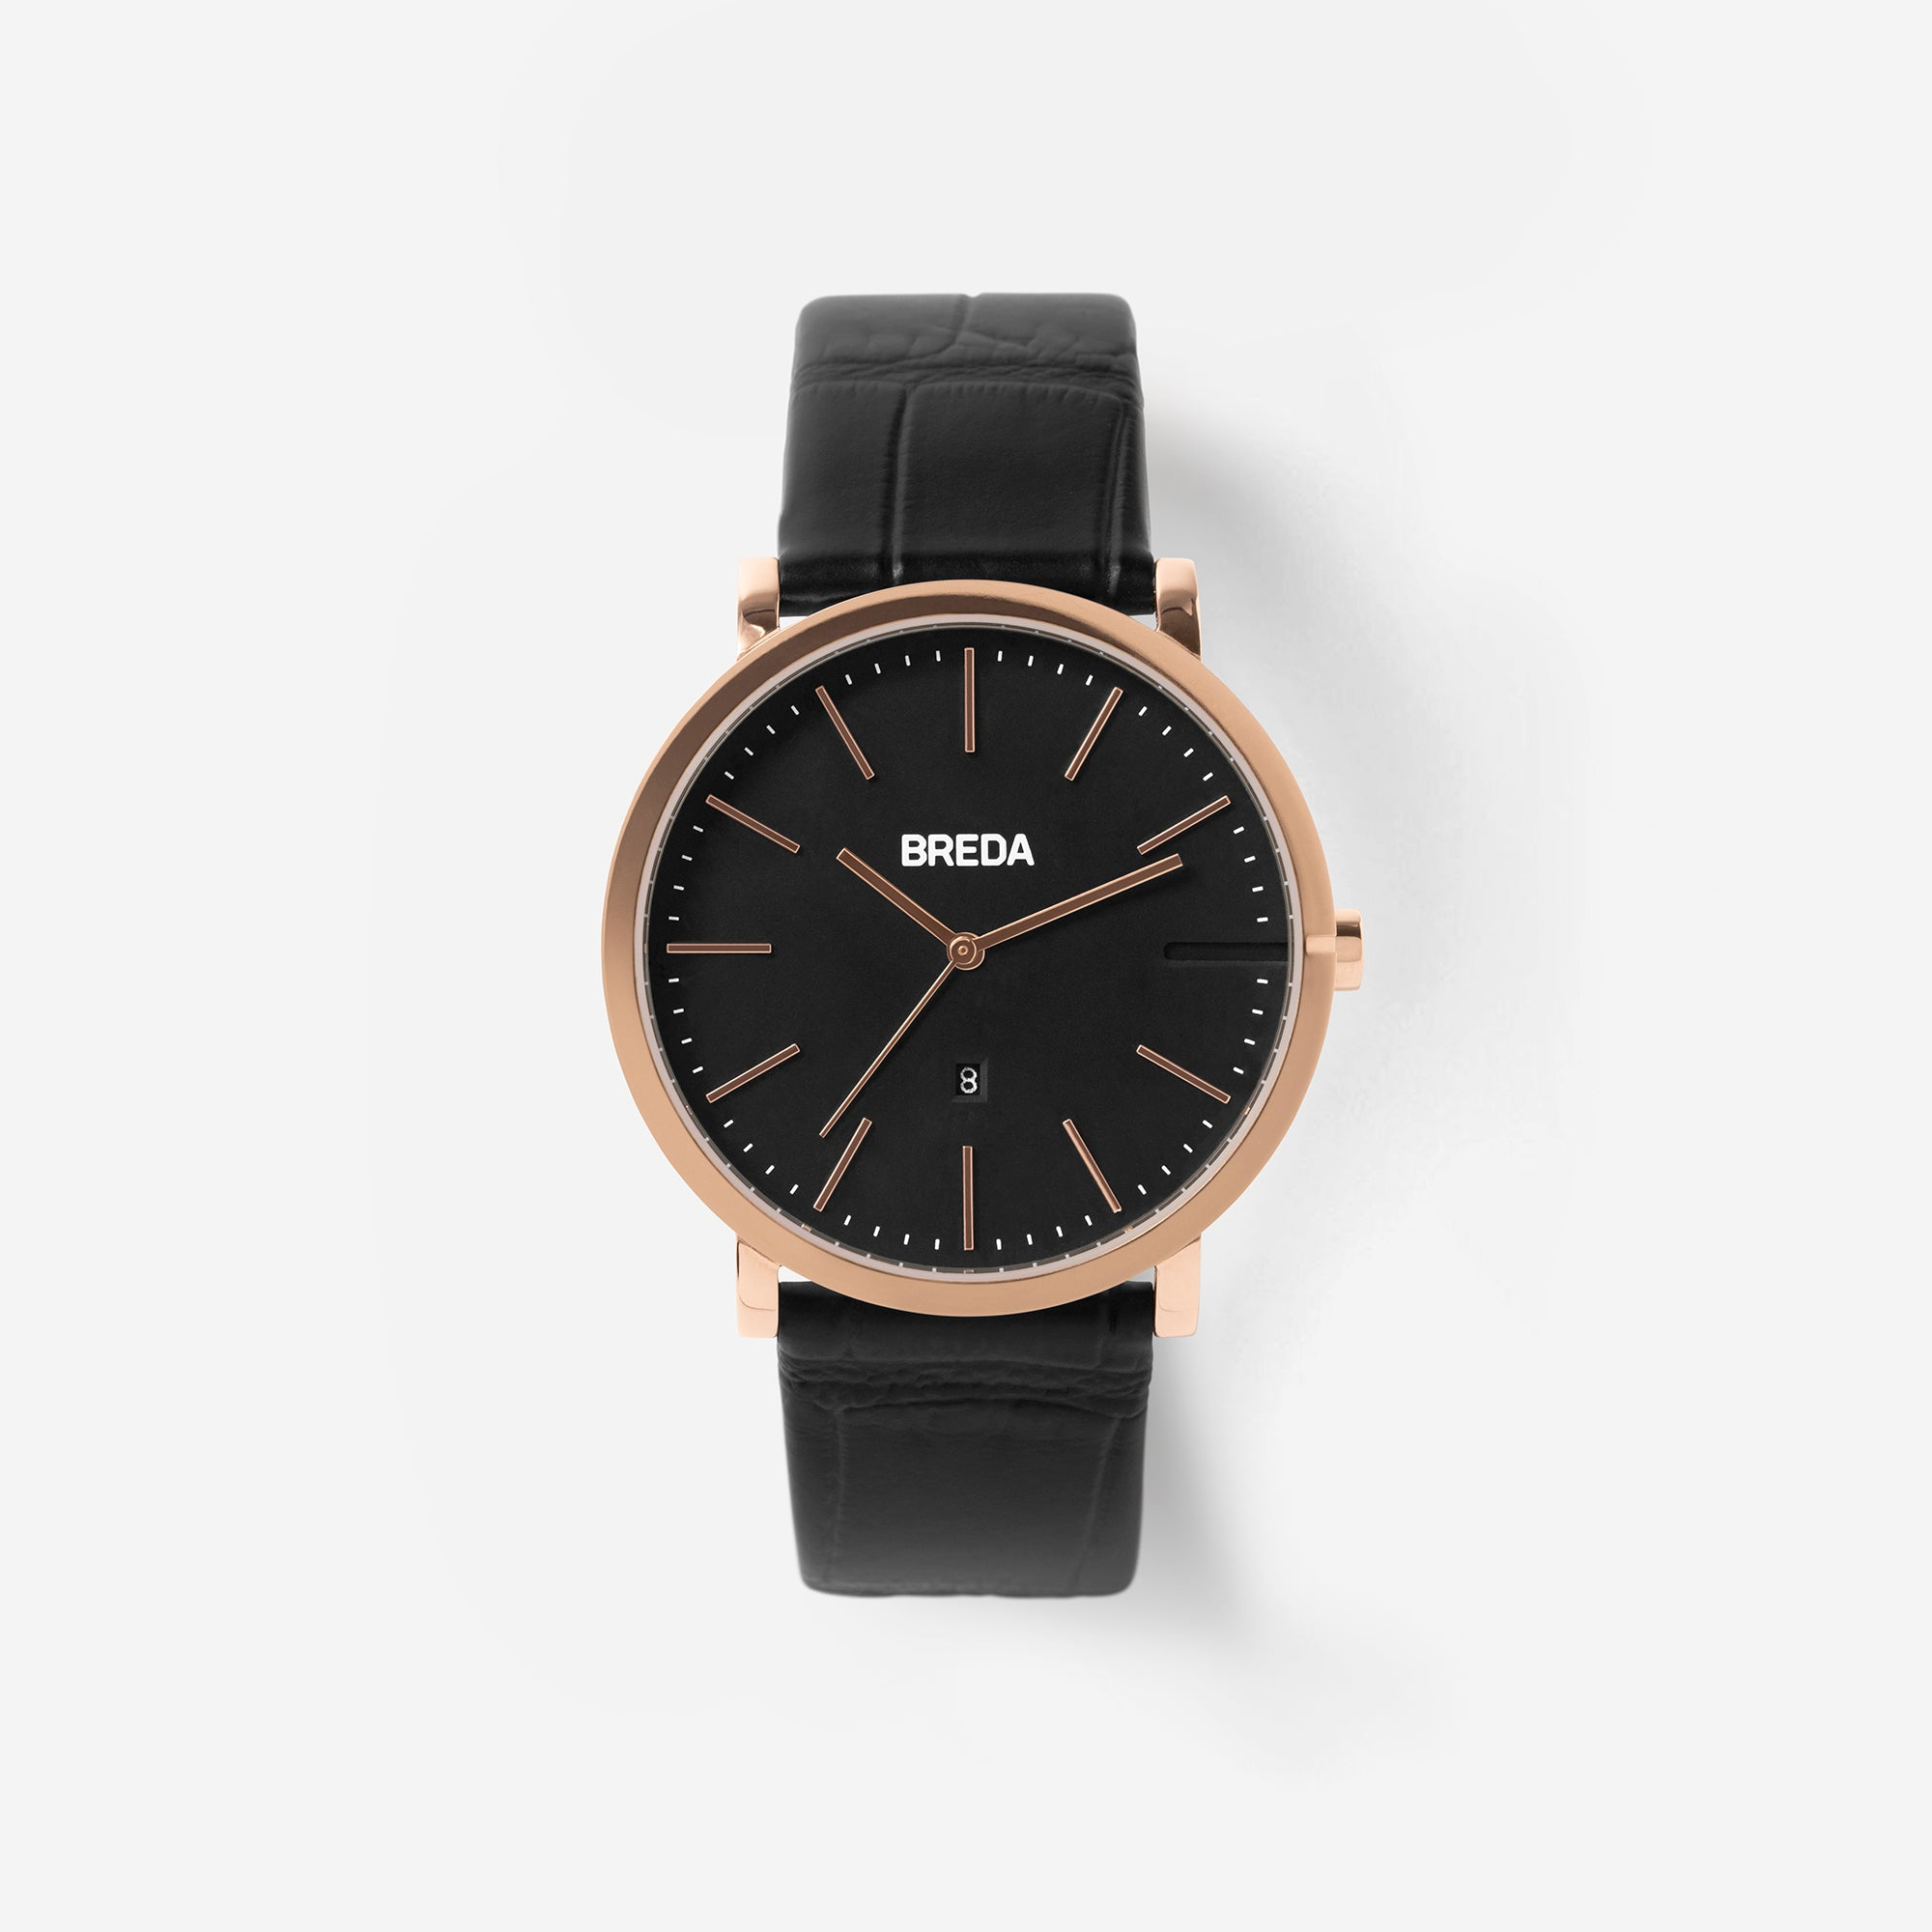 //cdn.shopify.com/s/files/1/0879/6650/products/breda-breuer-1732e-rose-gold-black-leather-watch-front_425a91a6-a588-4810-8090-261356210139_1024x1024.jpg?v=1543245212